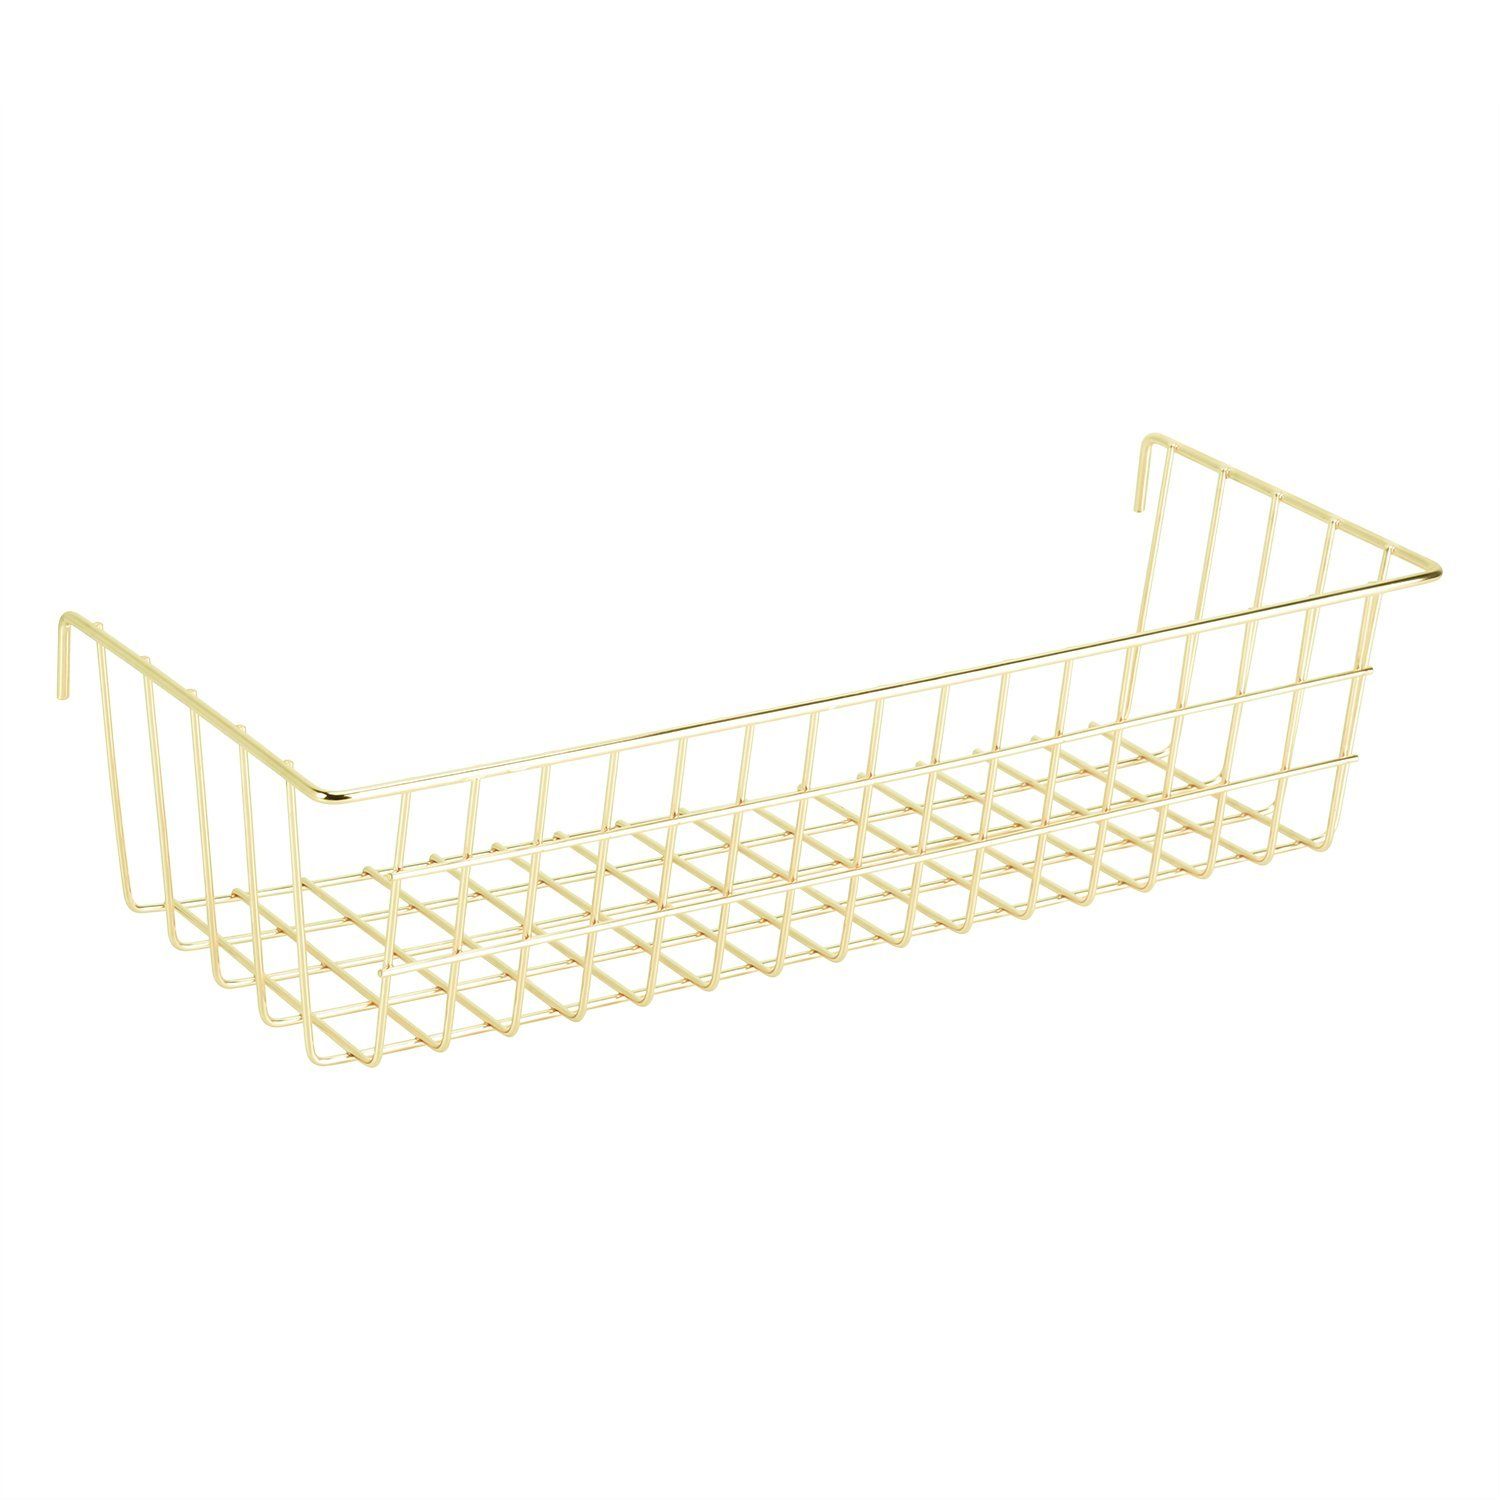 Nugoo Gold Hanging Basket for Wire Wall Grid Panel, Multifunction Wall Storage Display Decorative Basket, Size 14.6